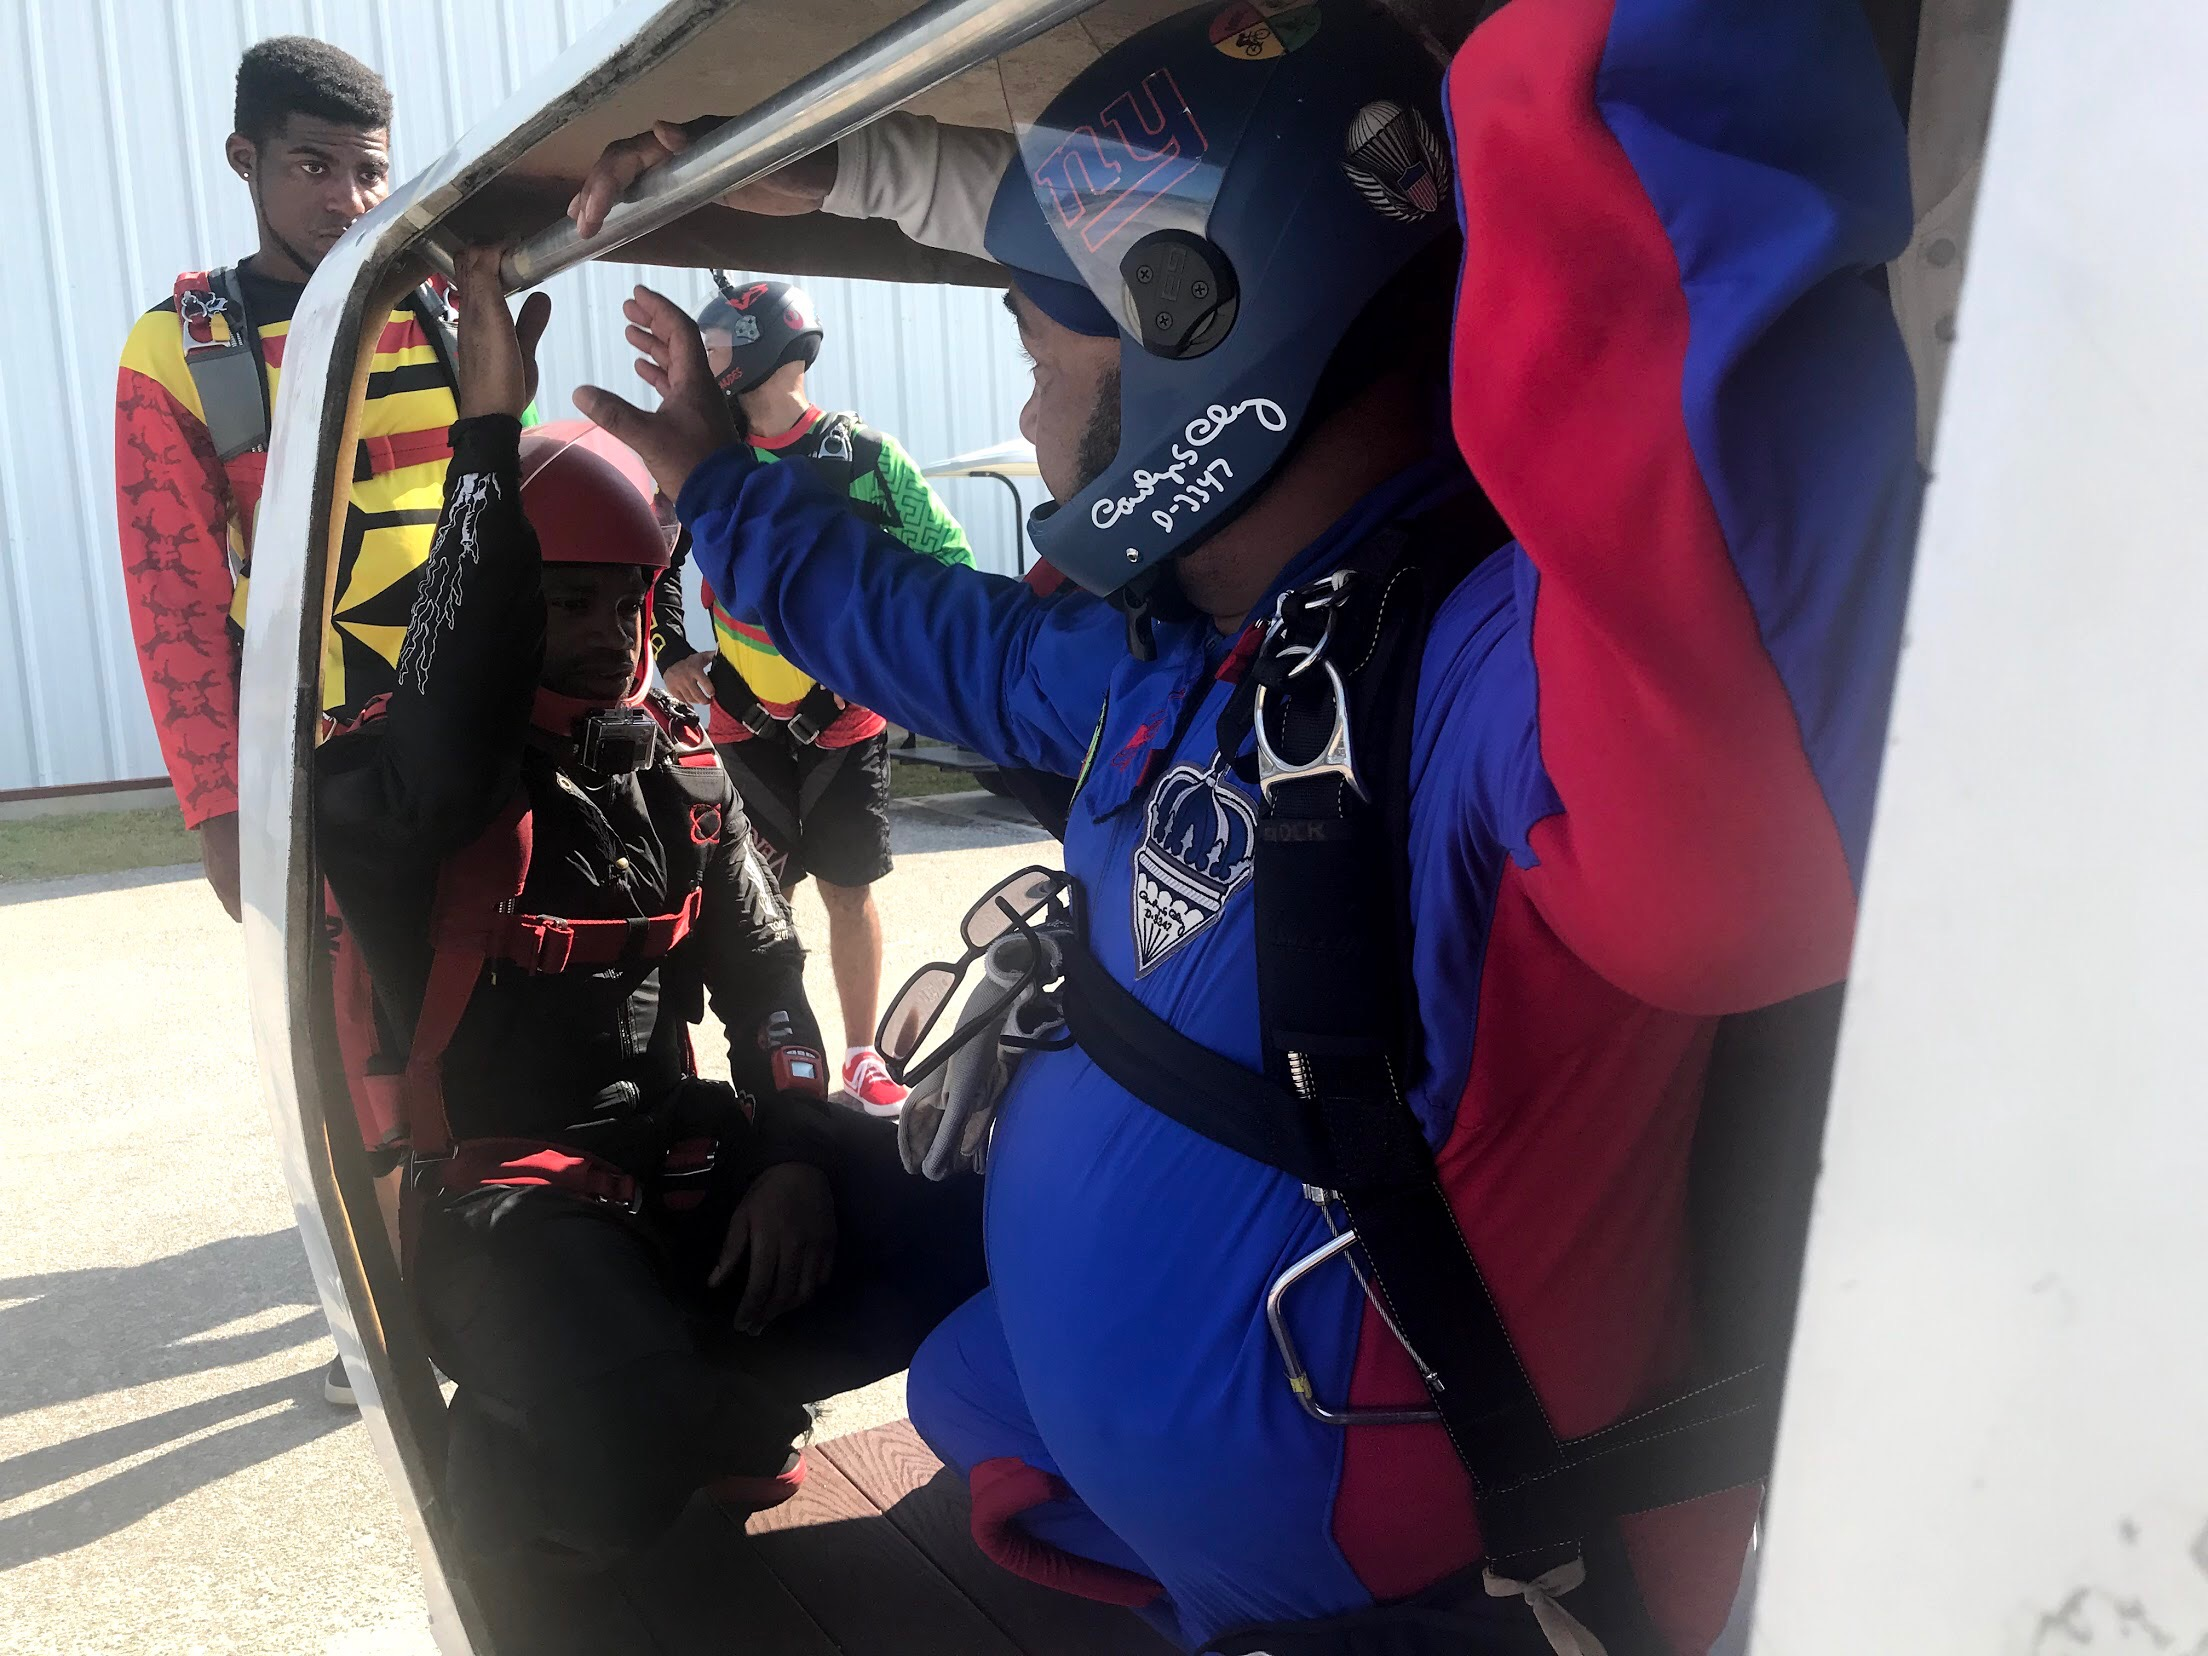 Mike 'dirt-dives' a skydiving exit at the mock airplane door during a Team Blackstar meet-up in North Carolina.  Photo courtesy of Danielle Williams